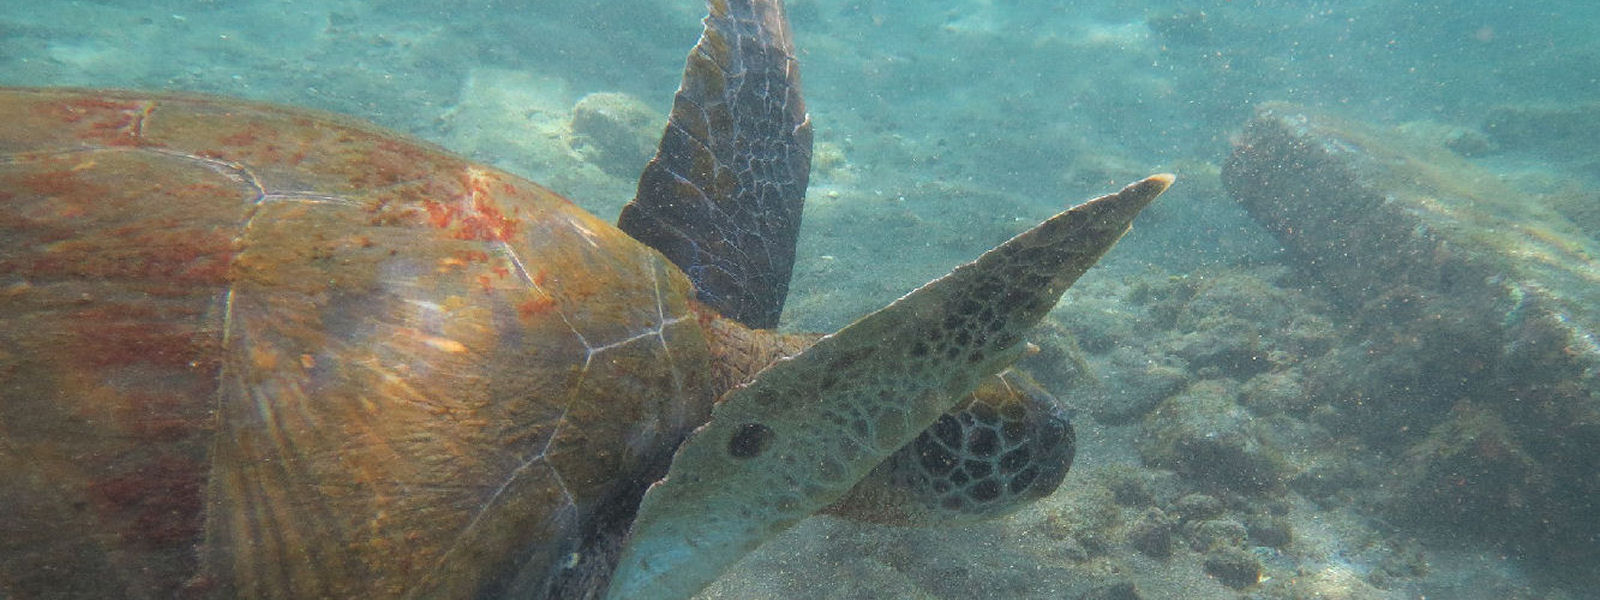 Try diving with Turtles